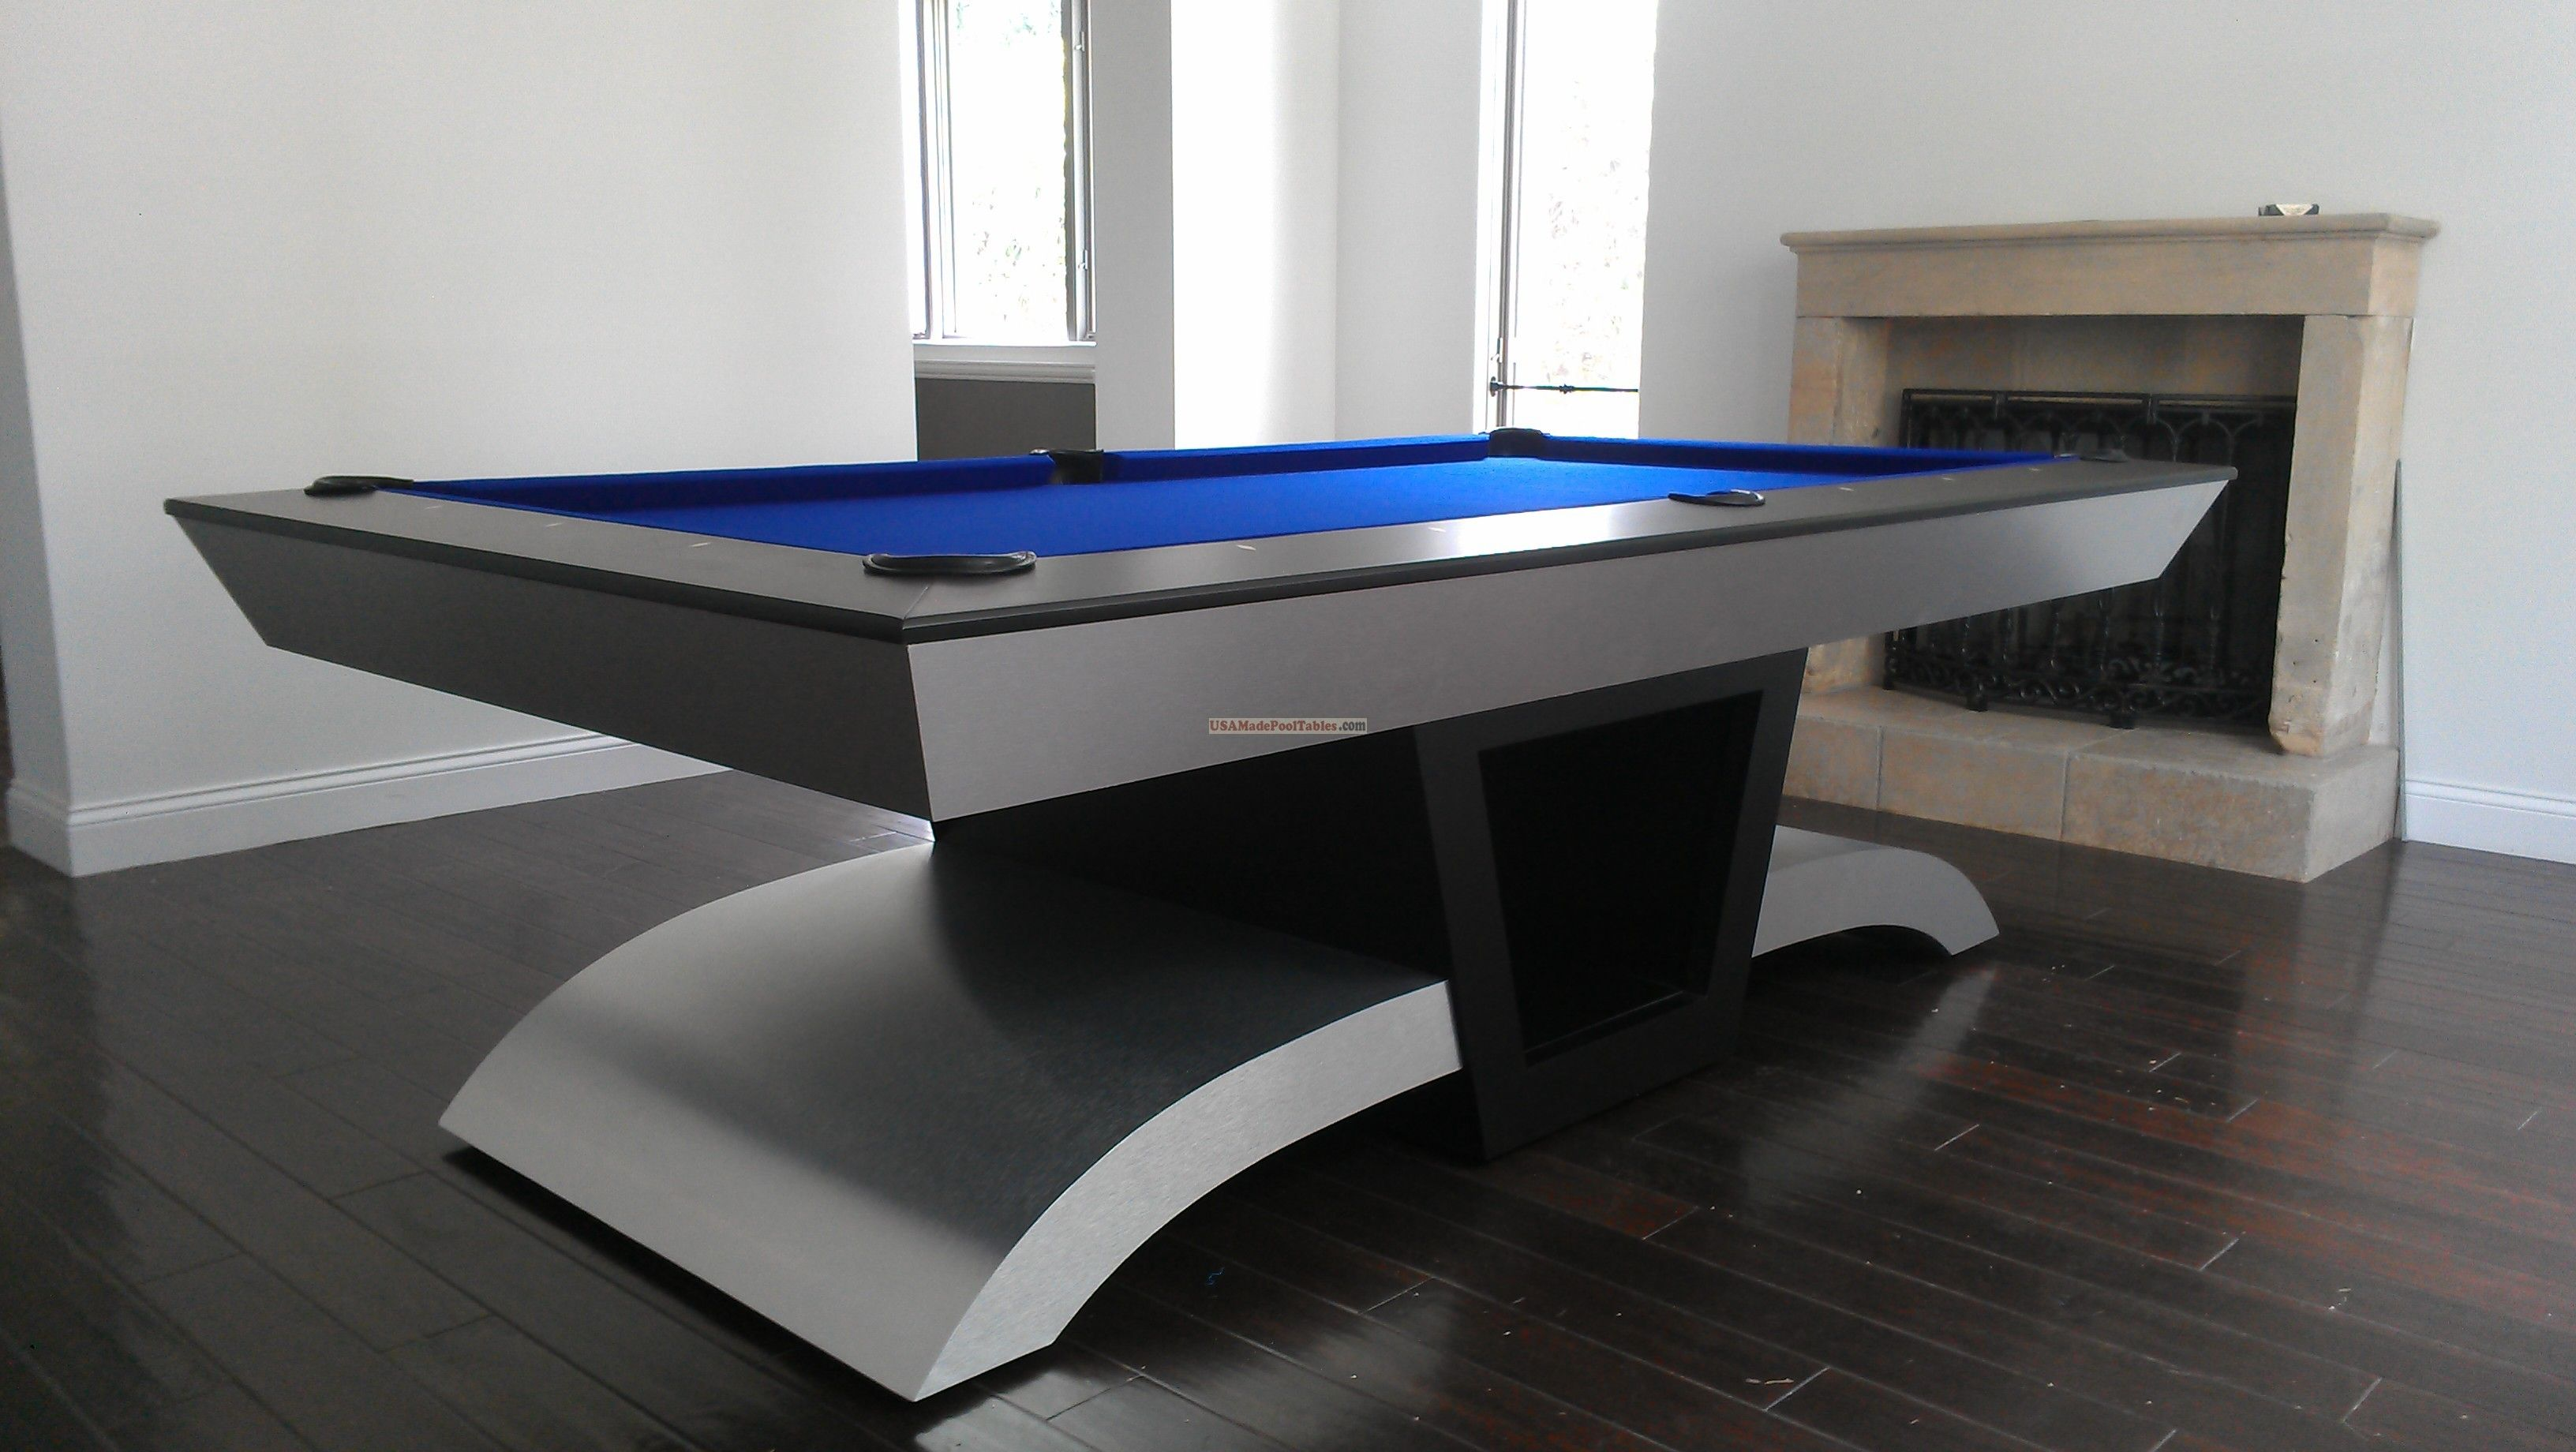 Pin By Helen Ladon On Awesome Stupid Ideas Modern Pool Table Pool Tables For Sale Modern Pools